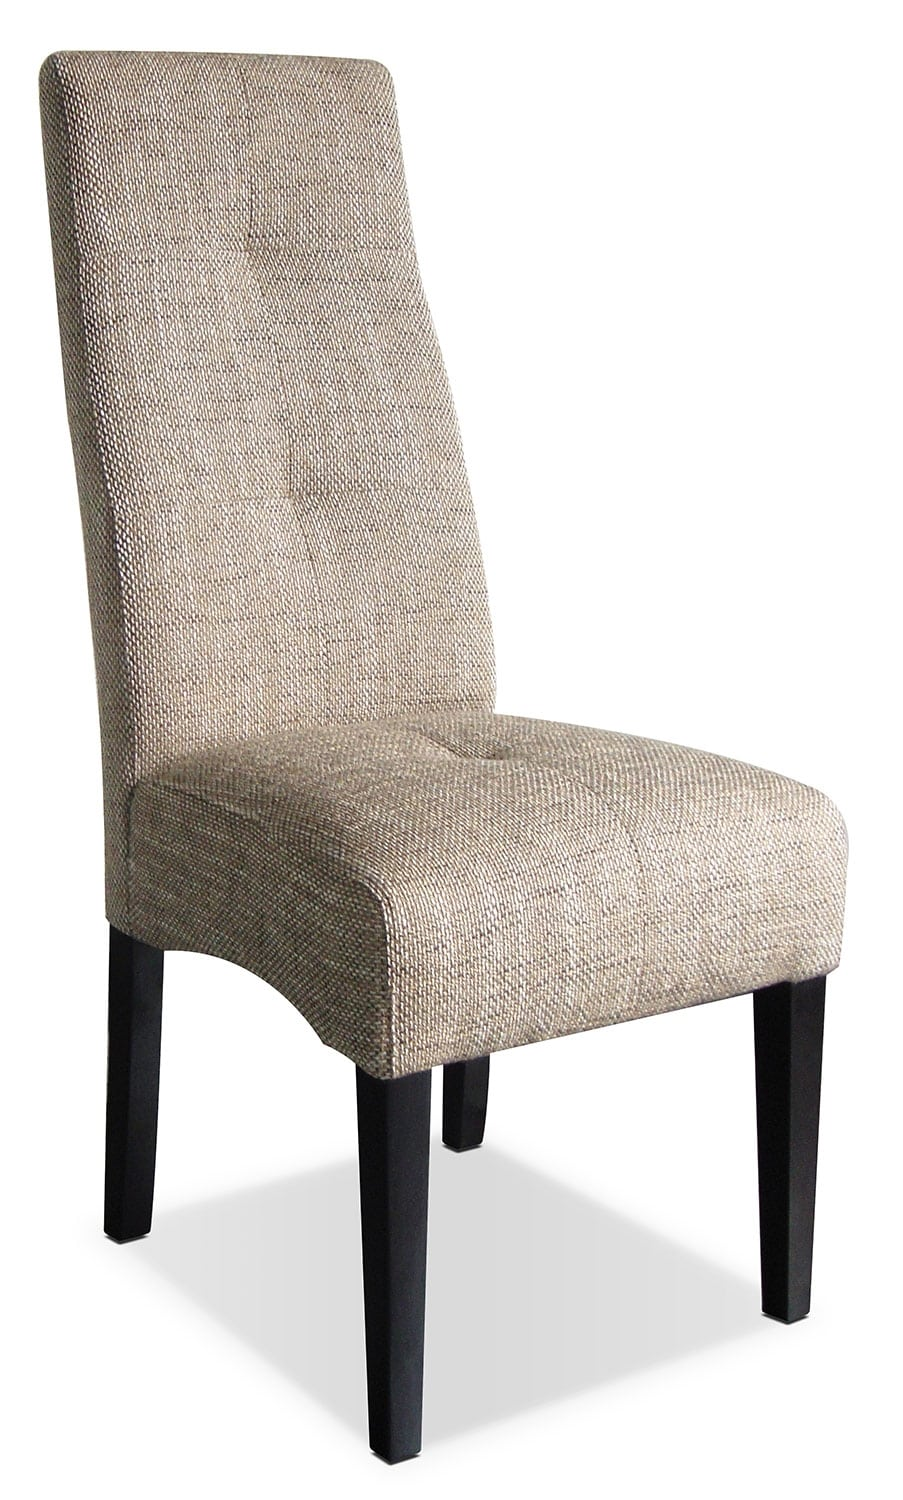 Dining Room Furniture - Beige Linen Chair